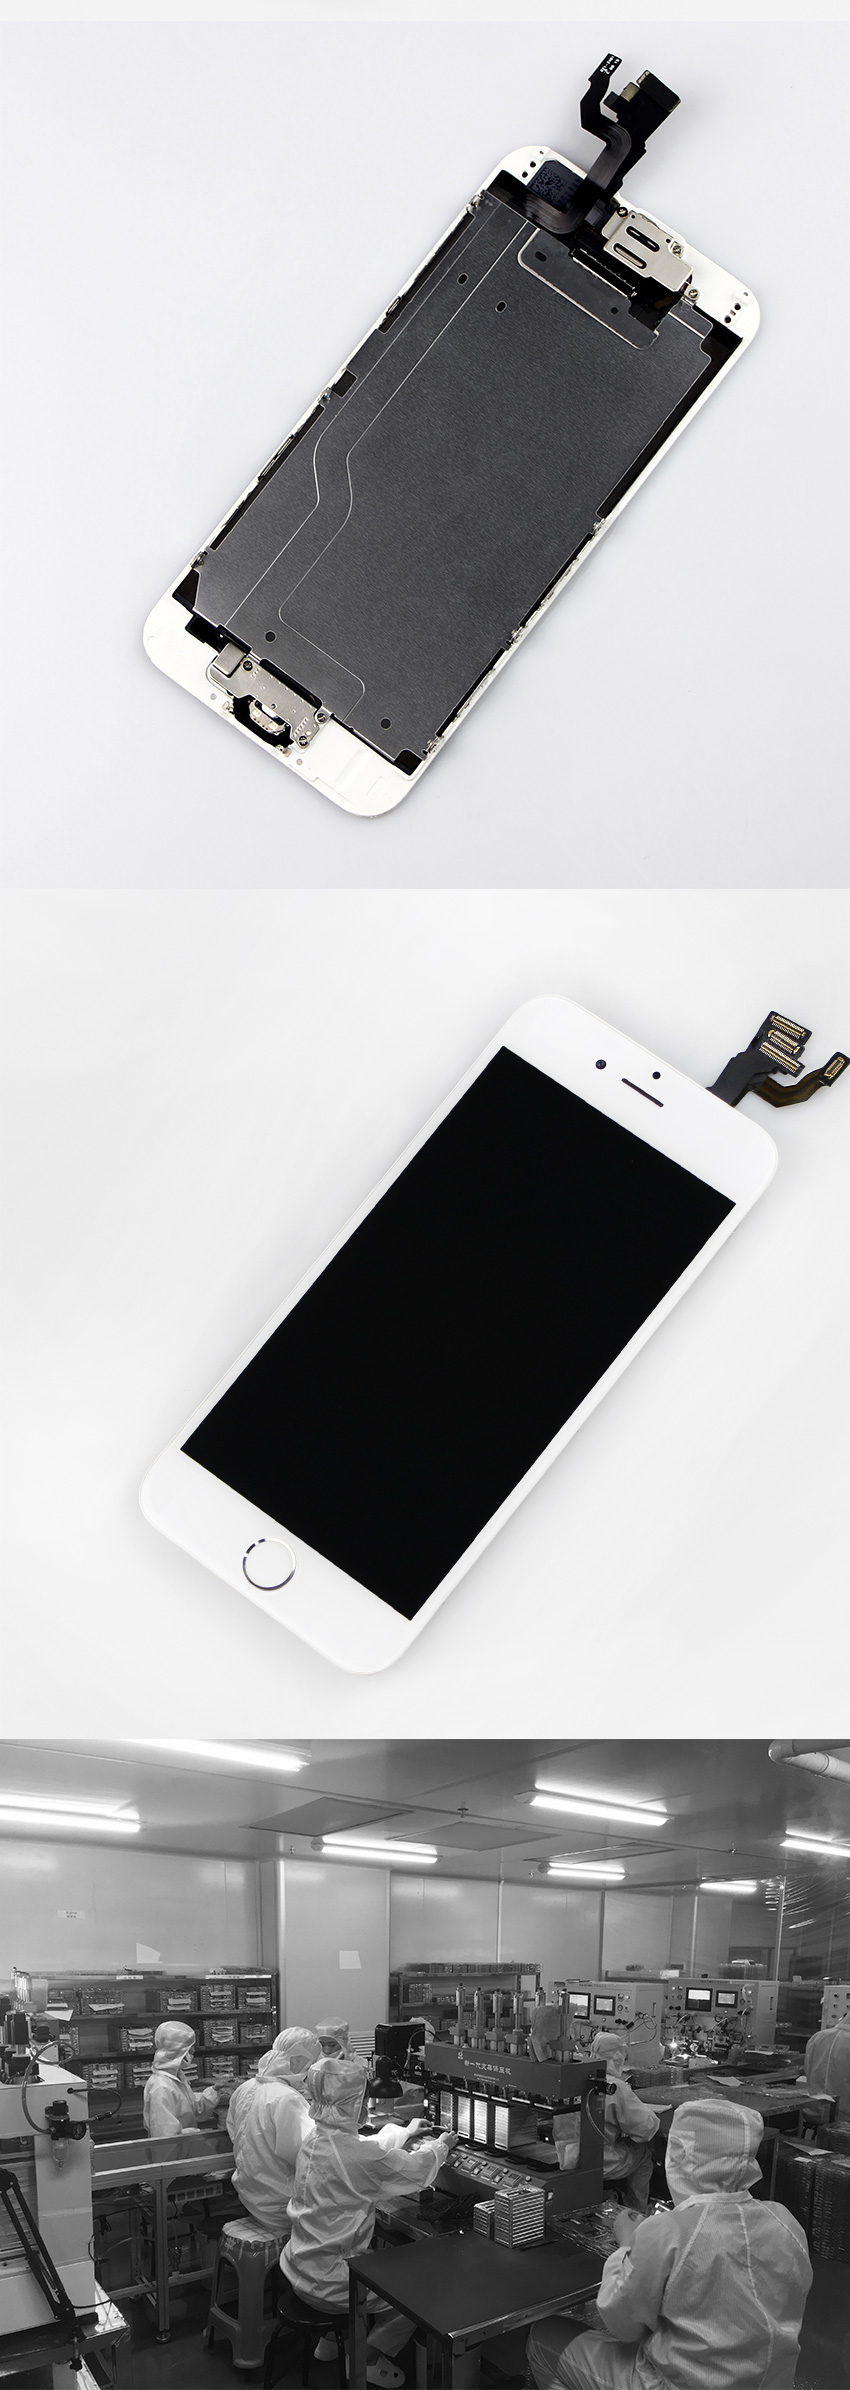 HTB11lPoXU rK1Rjy0Fcq6zEvVXam AAA+++ For iPhone 6 6S Plus LCD Full Assembly Complete 100% With 3D Force Touch For iPhone 5S 6Plus Screen Replacement Display